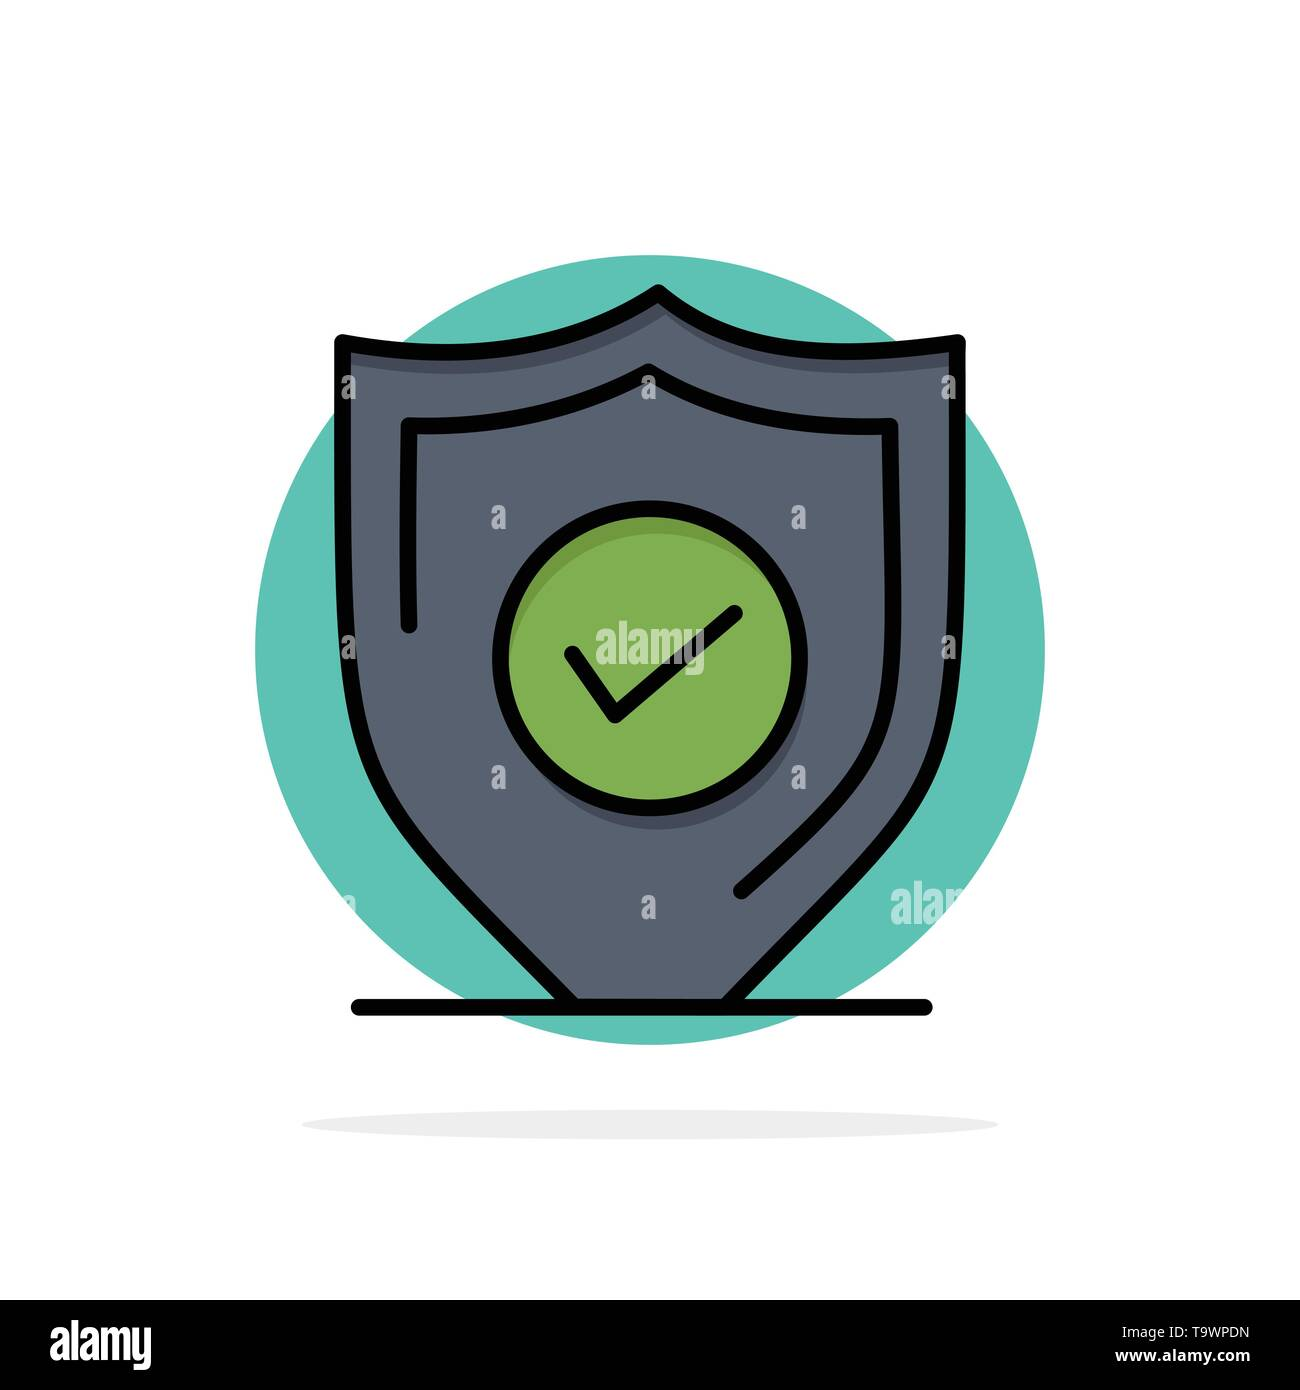 Confirm, Protection, Security, Secure Abstract Circle Background Flat color Icon - Stock Image